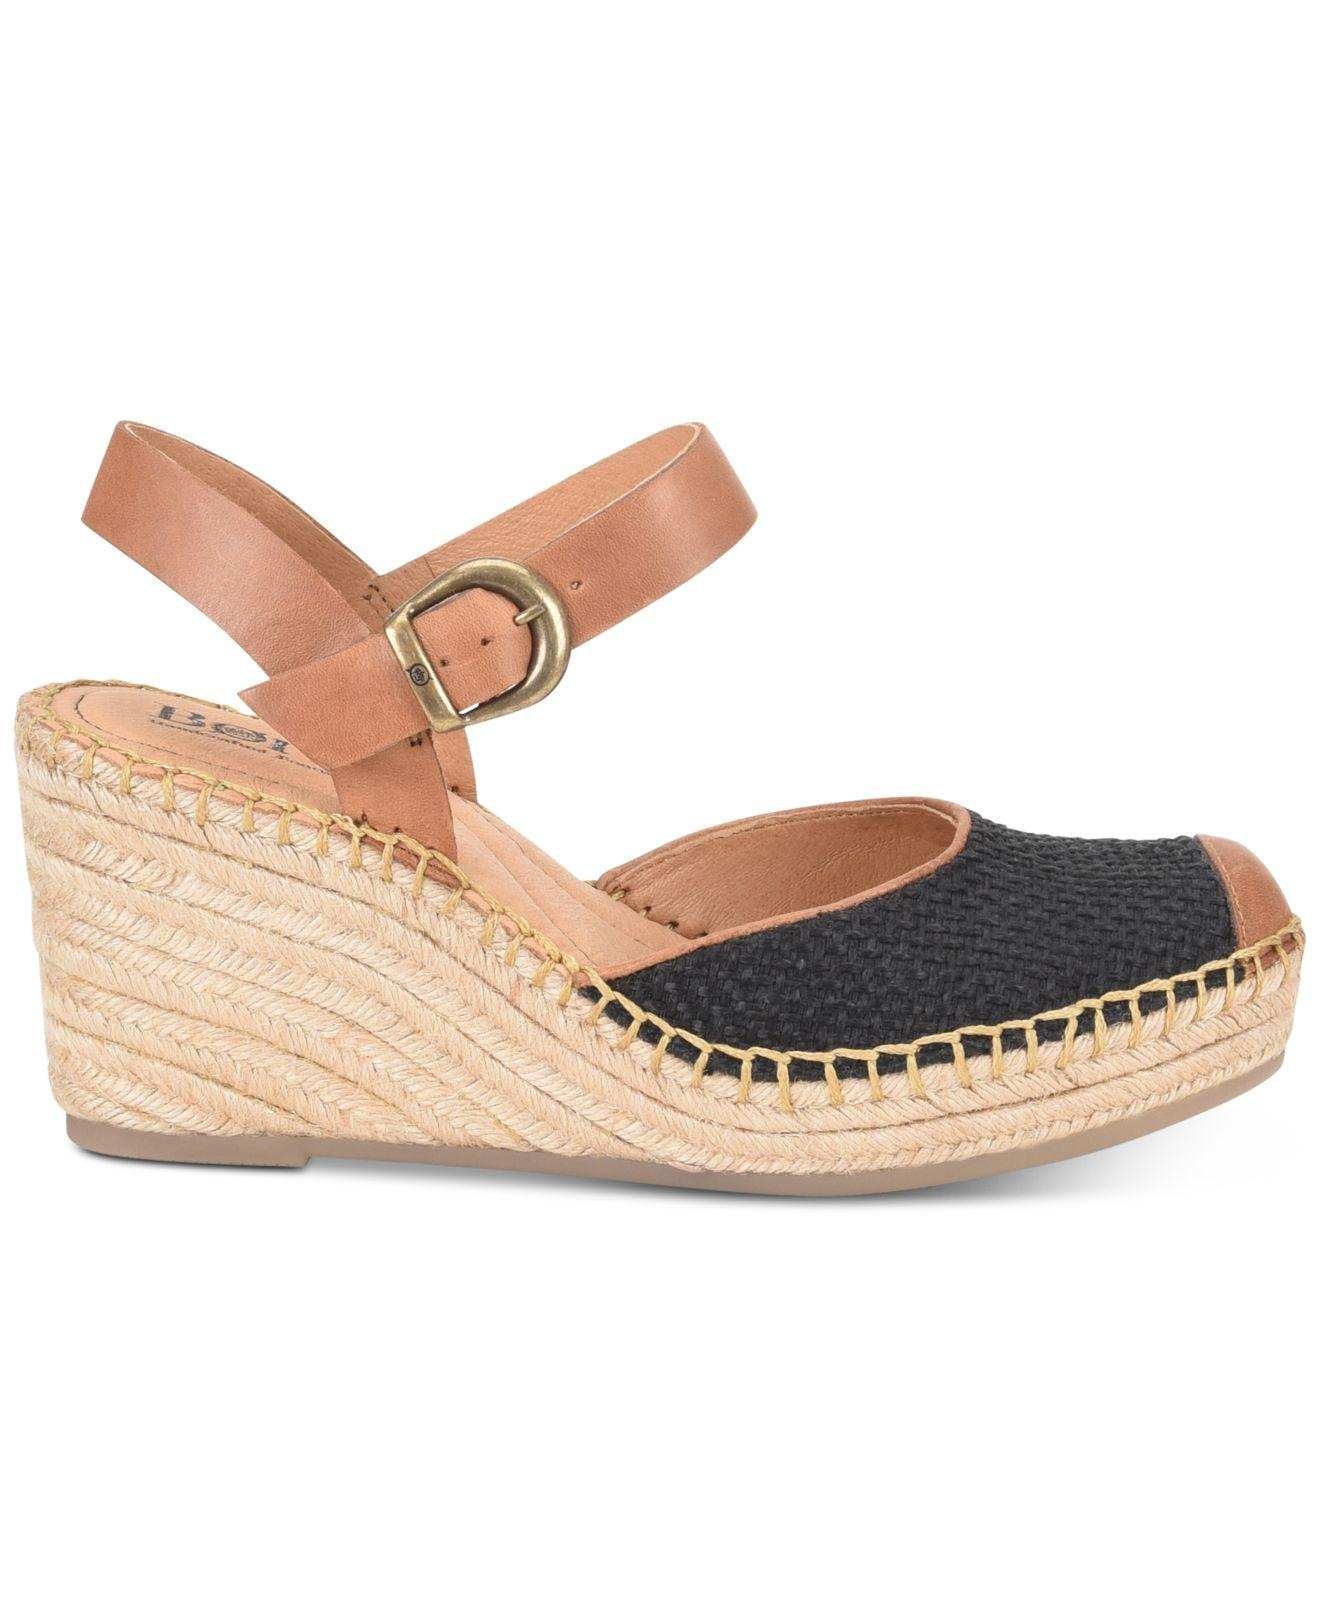 78d942097ab7 Lyst - Born Guadalupe Wedge Sandals in Black